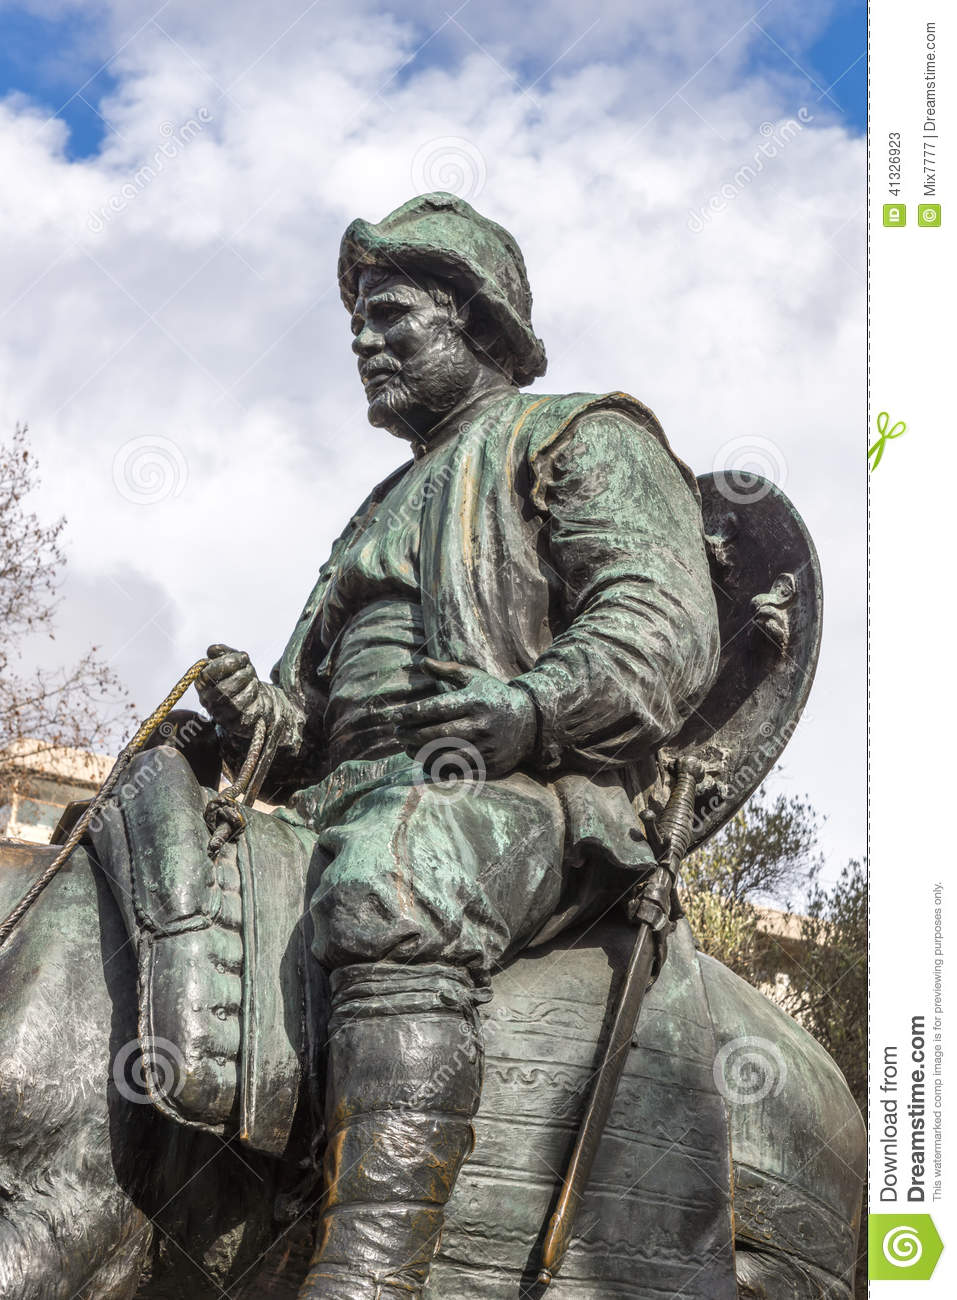 Stock Photo: Sancho Panza from monument to Cervantes and heroes of his